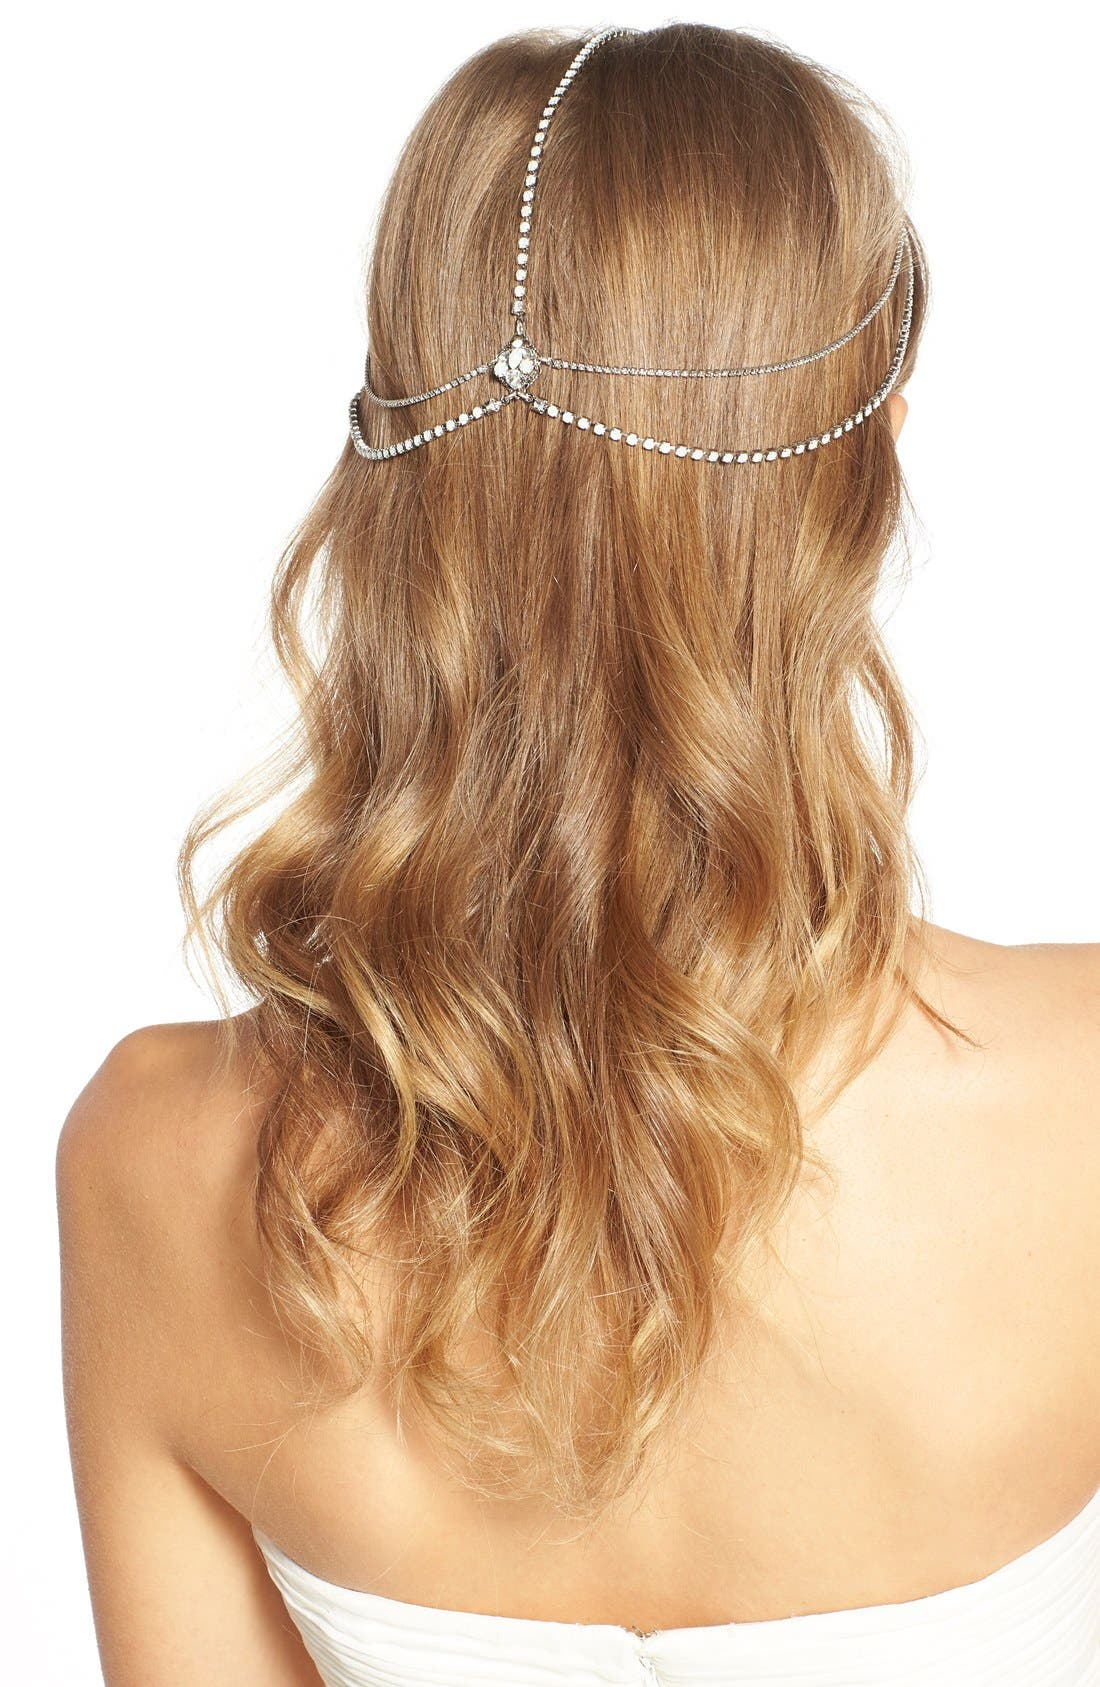 'Lindsay' Embellished Hair Chain,                             Alternate thumbnail 4, color,                             Opal